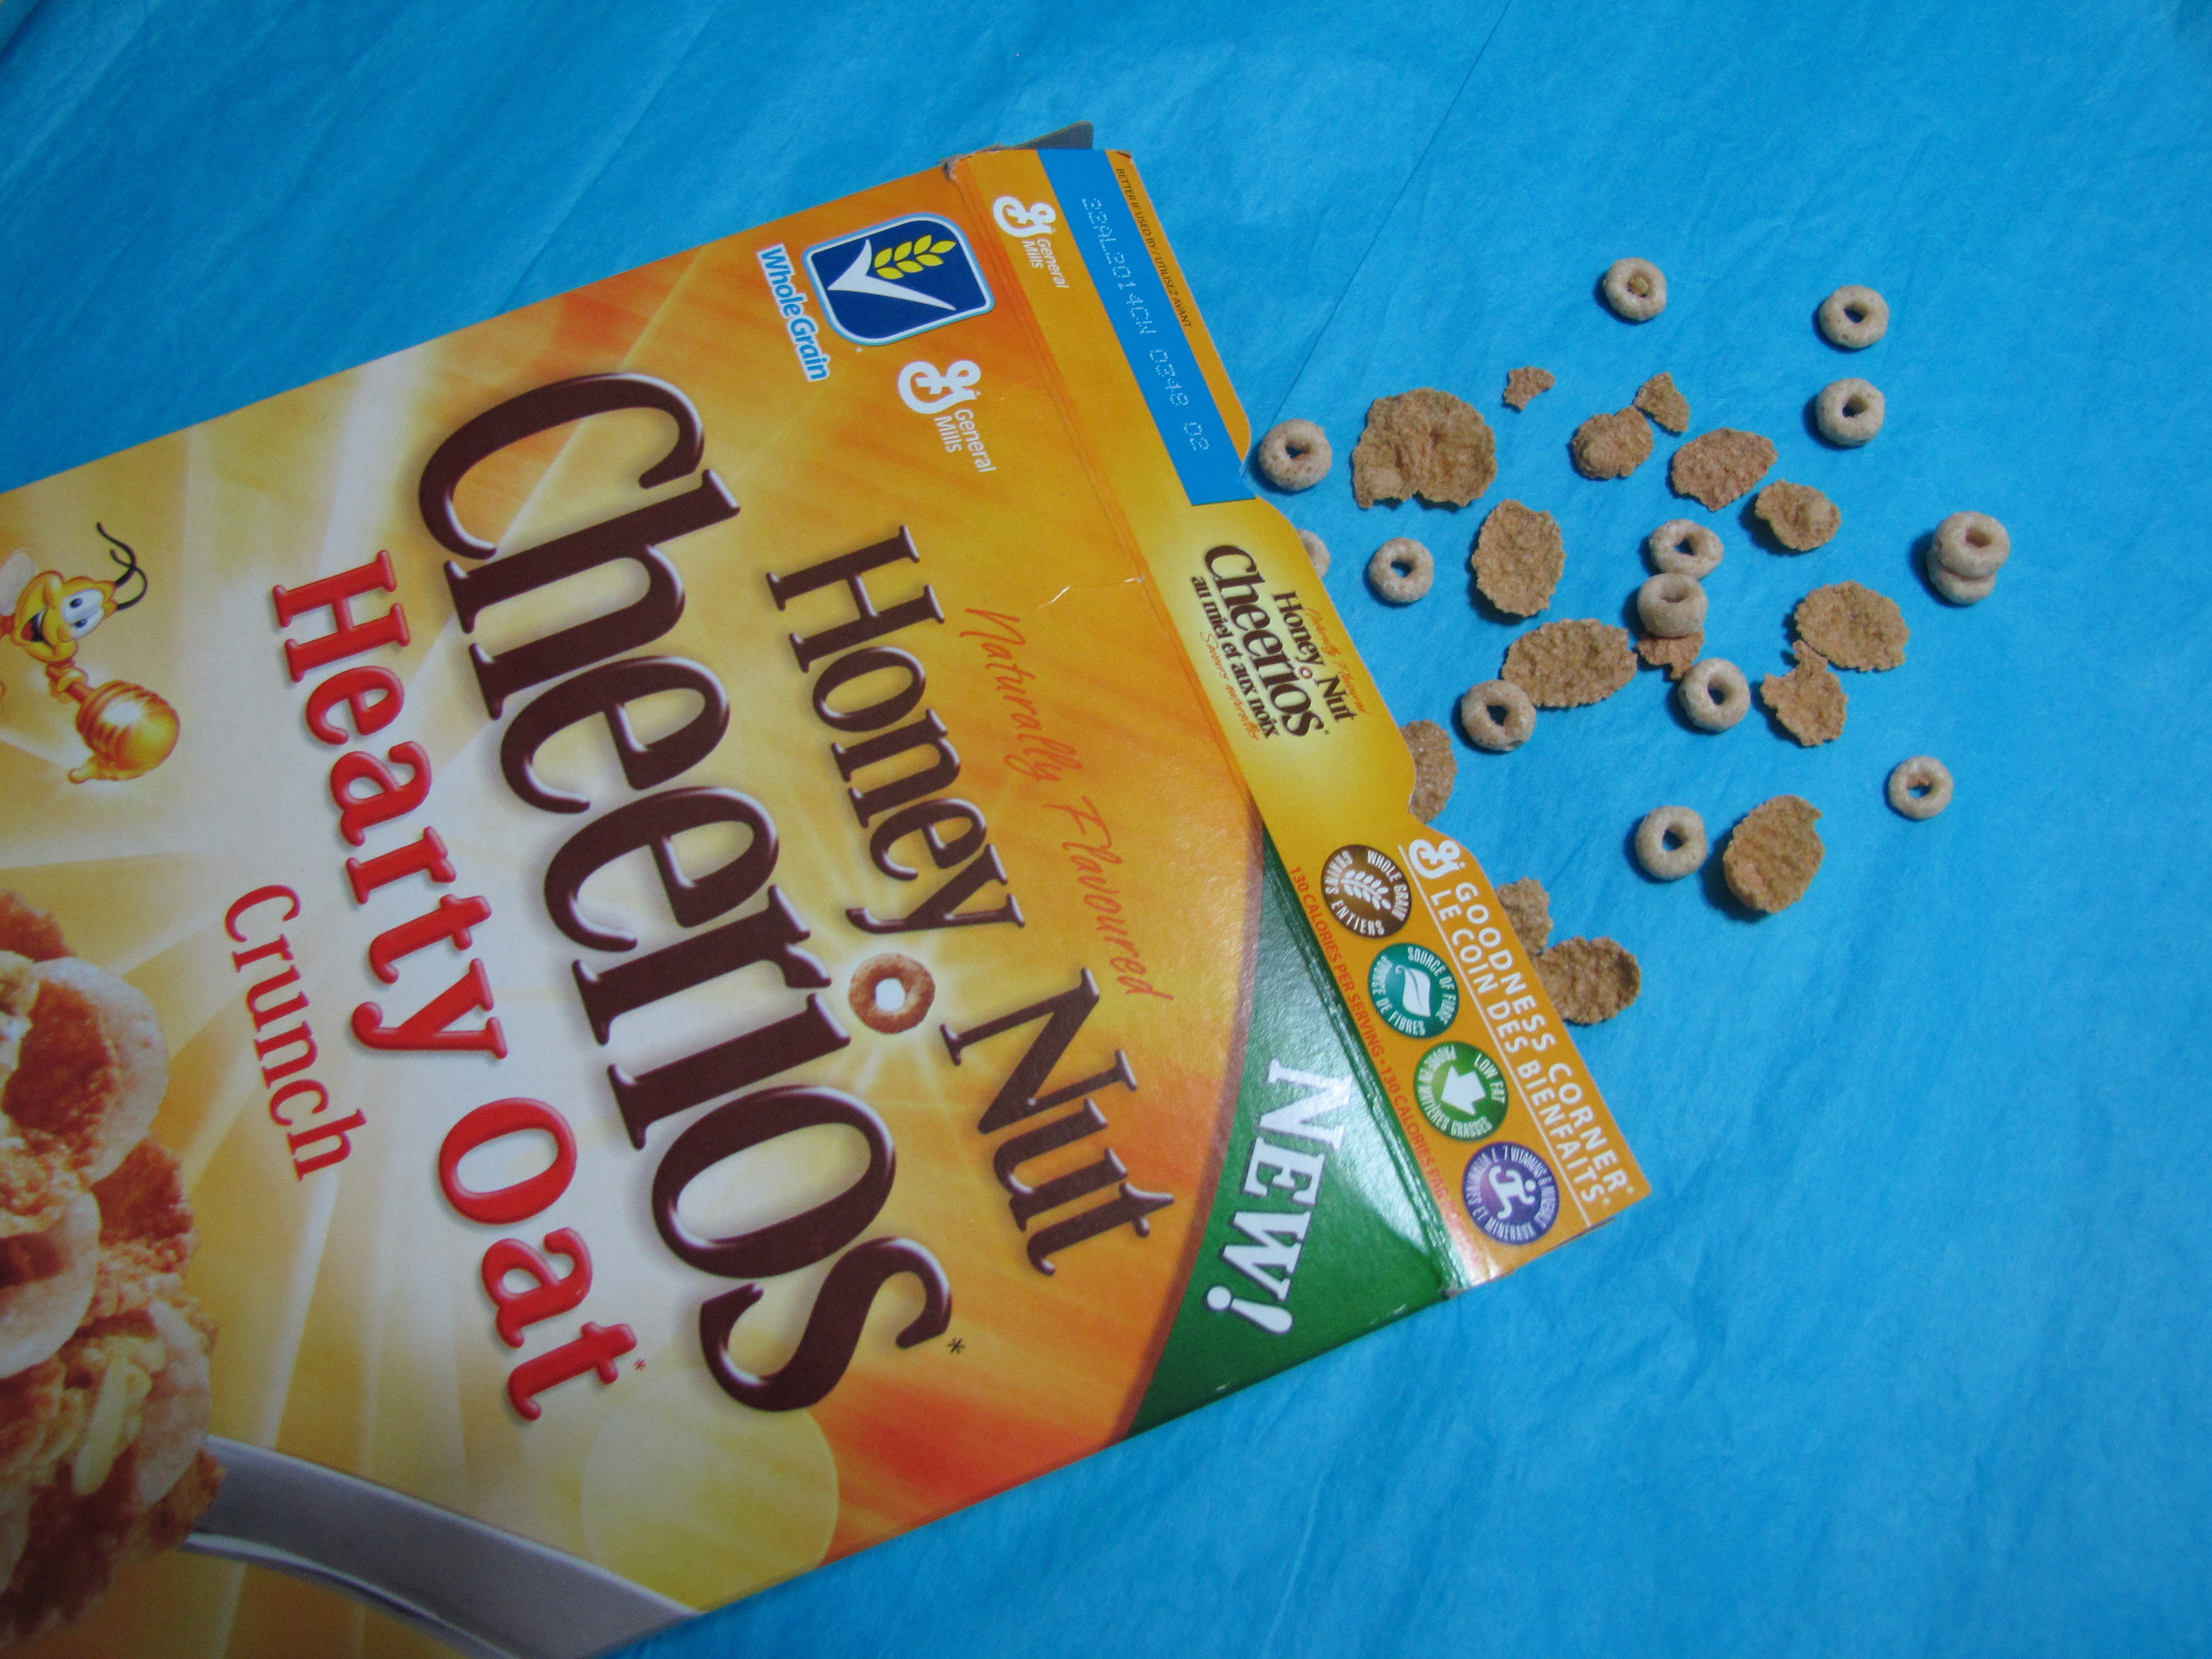 Honey Nut Cheerios reviews in Cereal - ChickAdvisor (page 5)